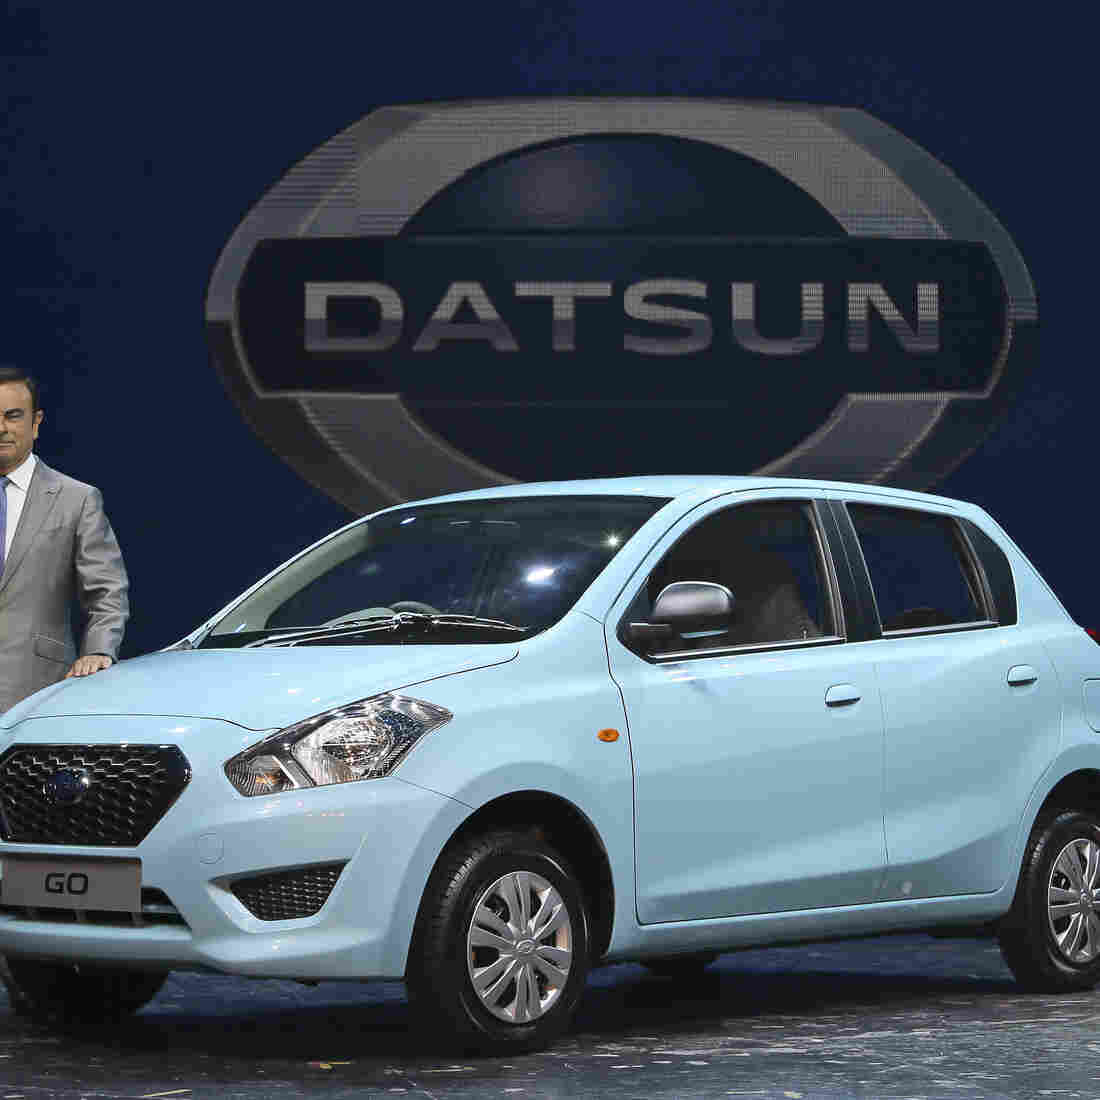 Datsun's Rebirth In India And The Revival Of Long-Gone Cars